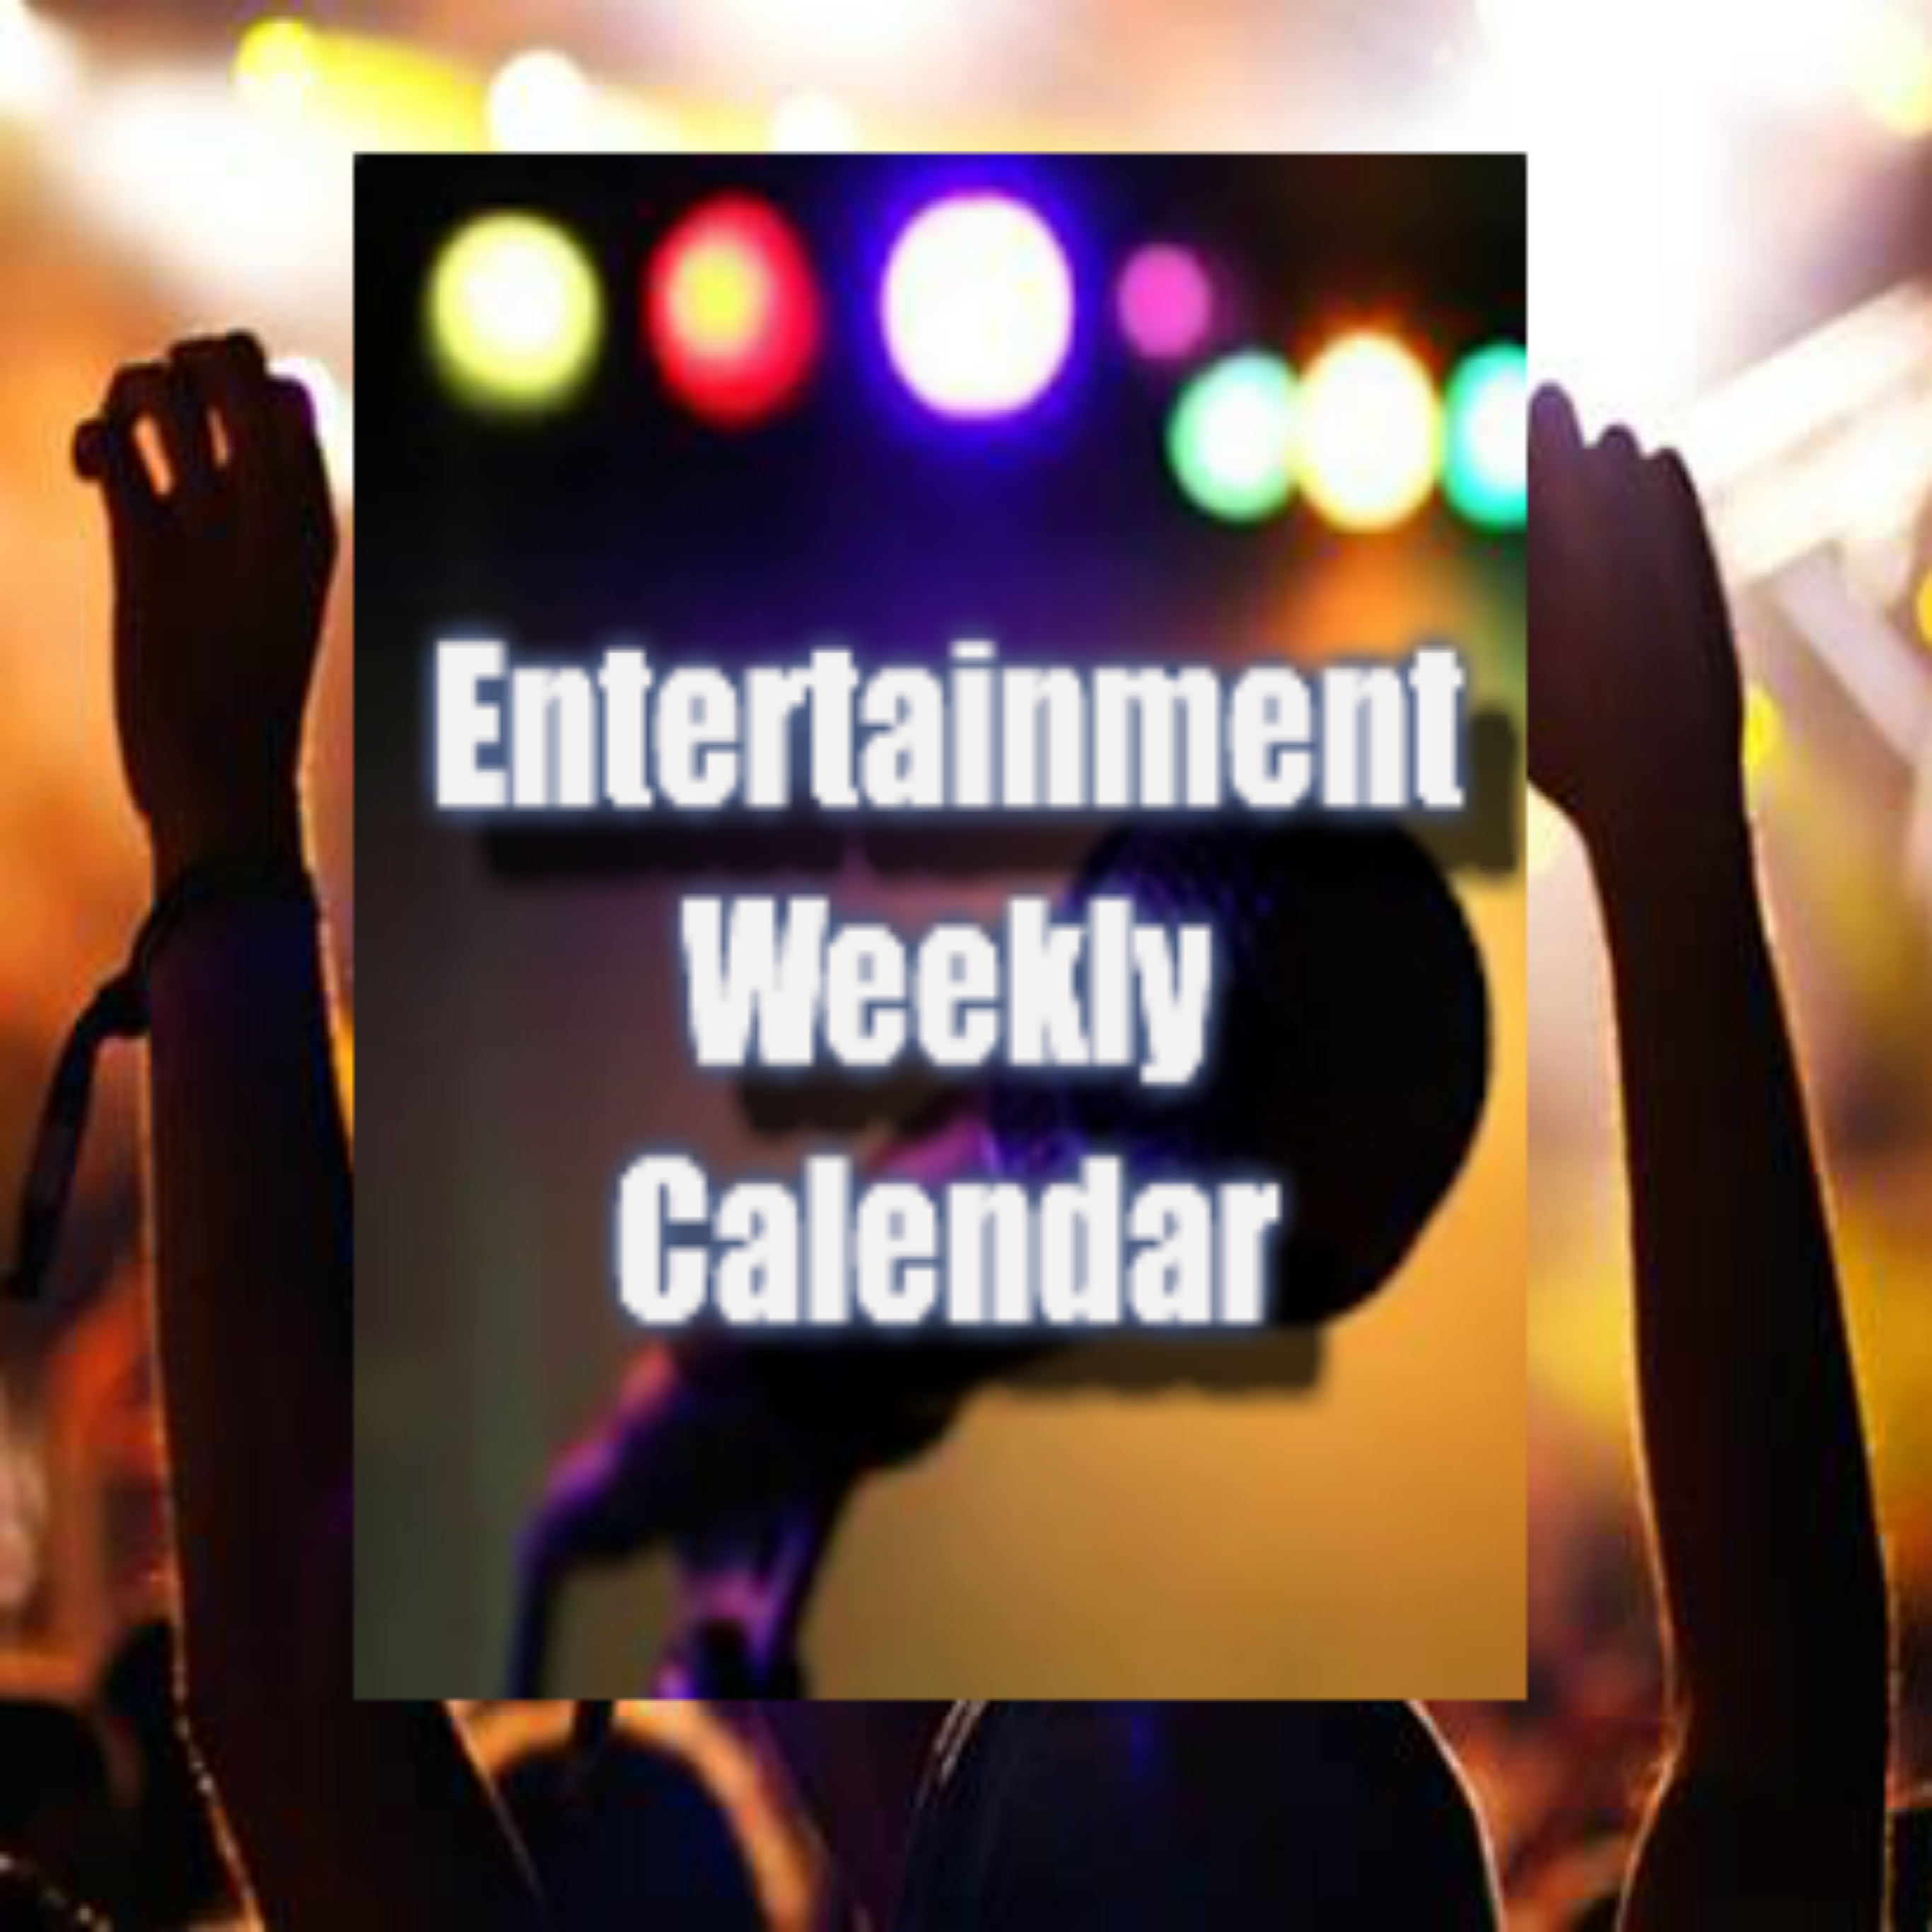 Entertainment-Events-live music-Weekly-Calendar1